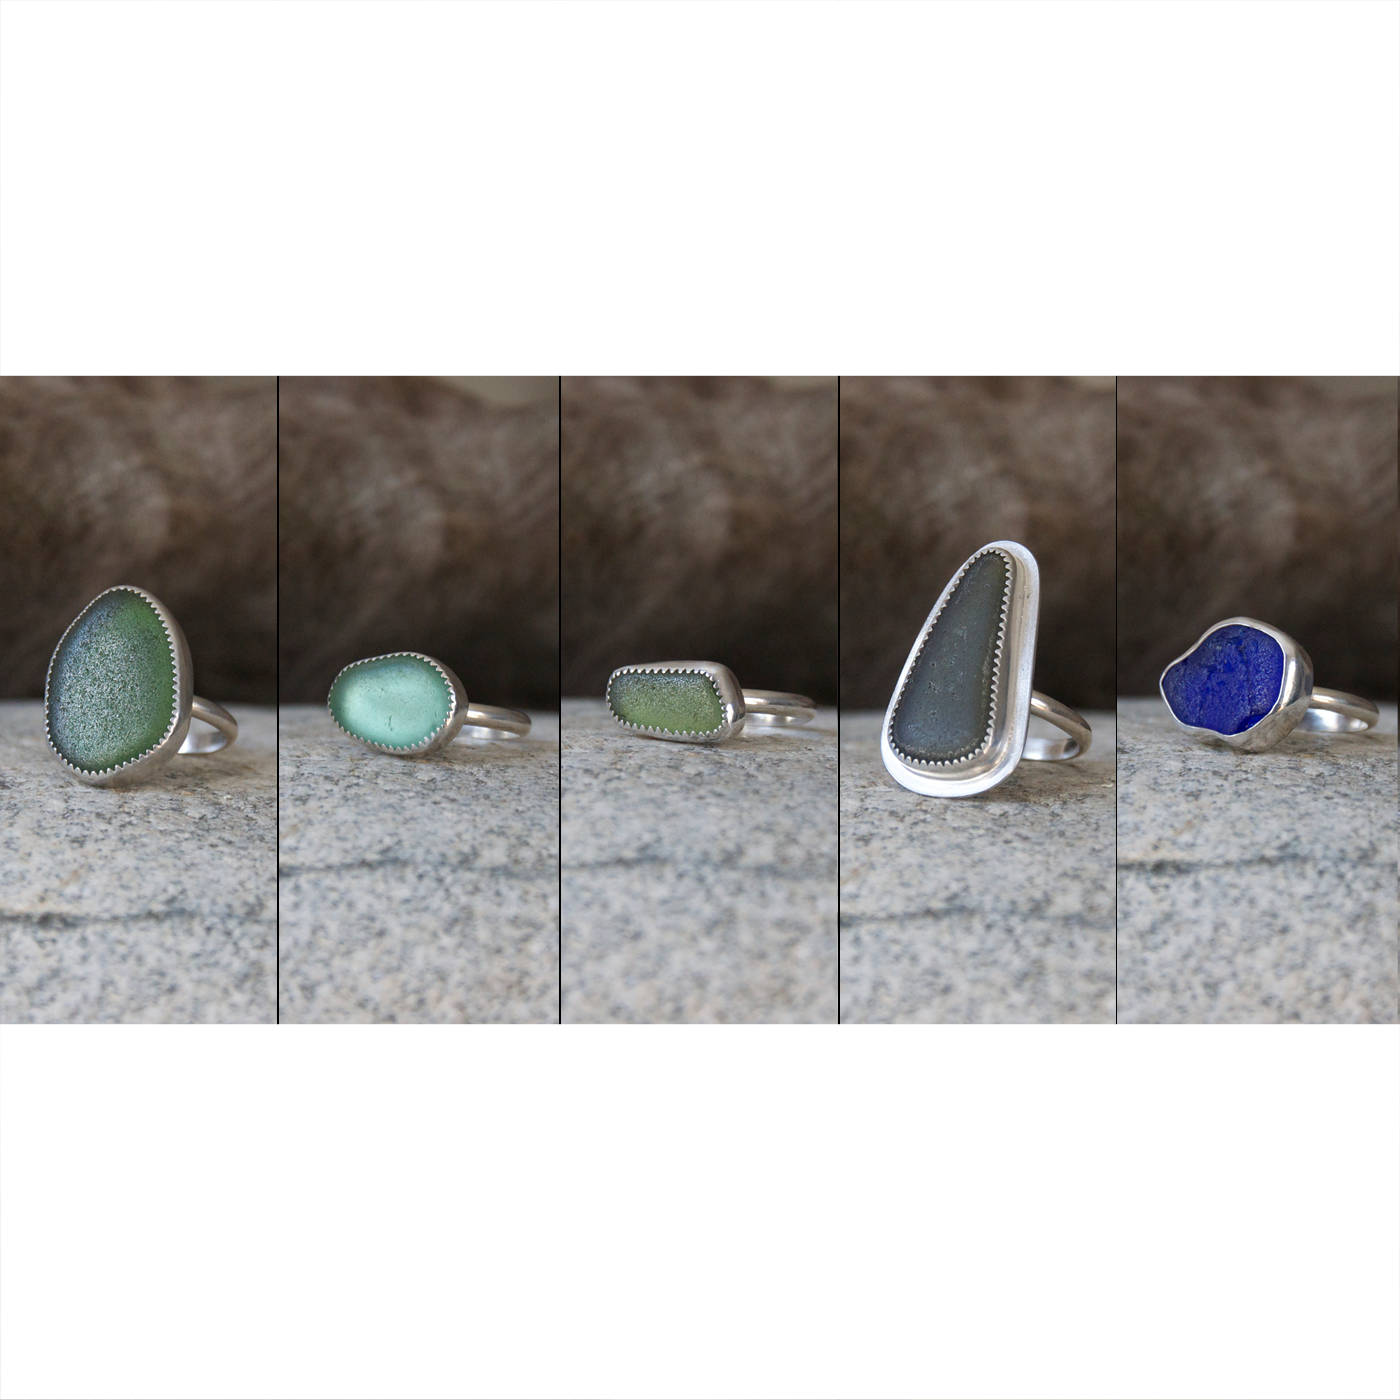 Ready To Ship Handcrafted Sea Glass Rings Genuine The Wet Brush Gemstone Abalone Zoom